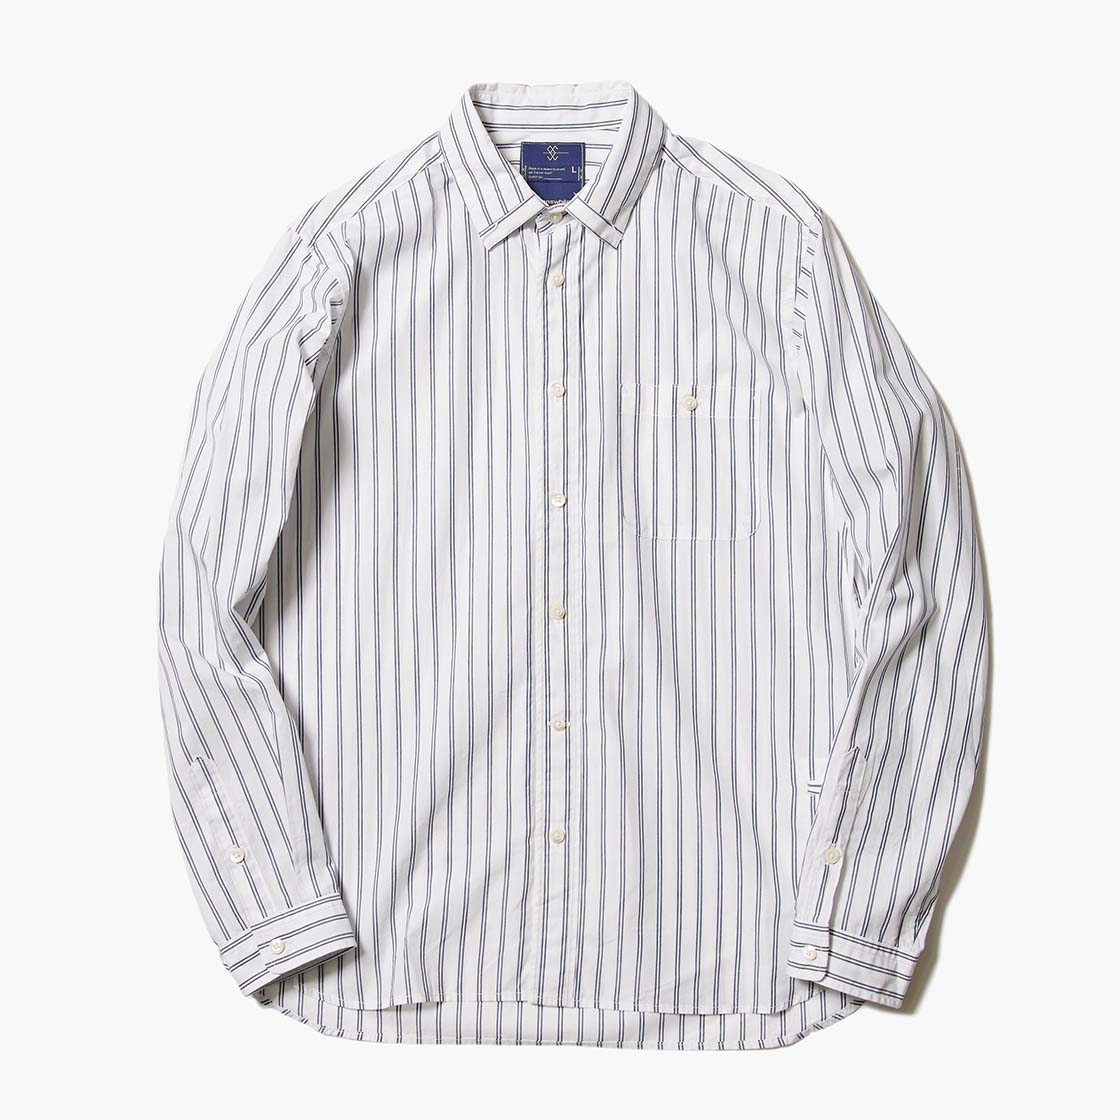 Argane Oil Cotton Stripe SH